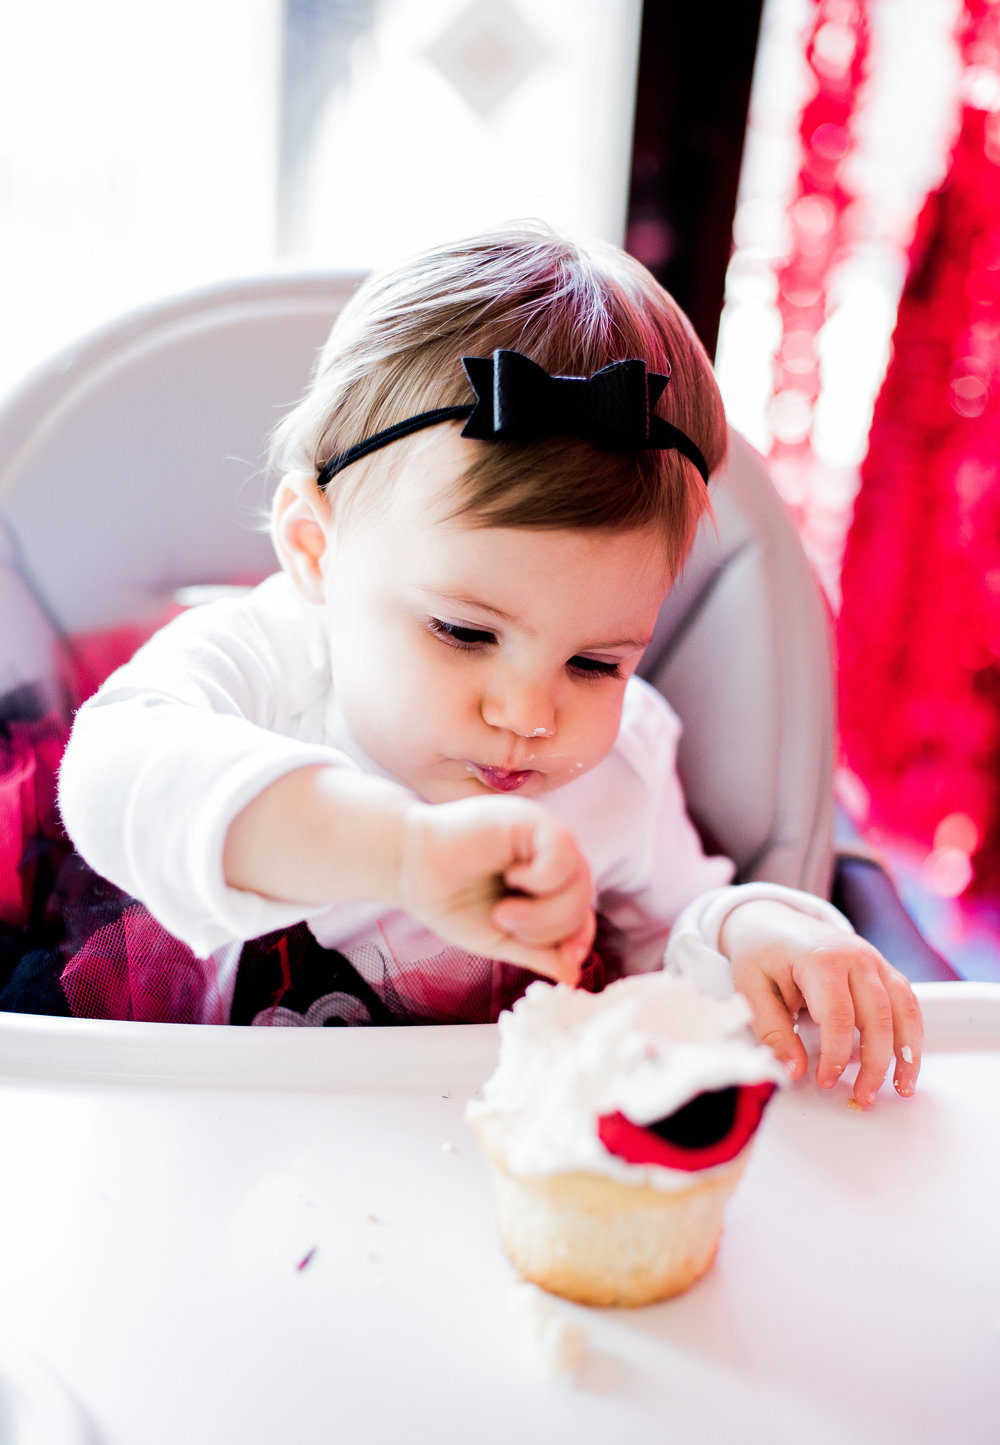 Alexis'_1st_Birthday_04.07.18._-27.jpg